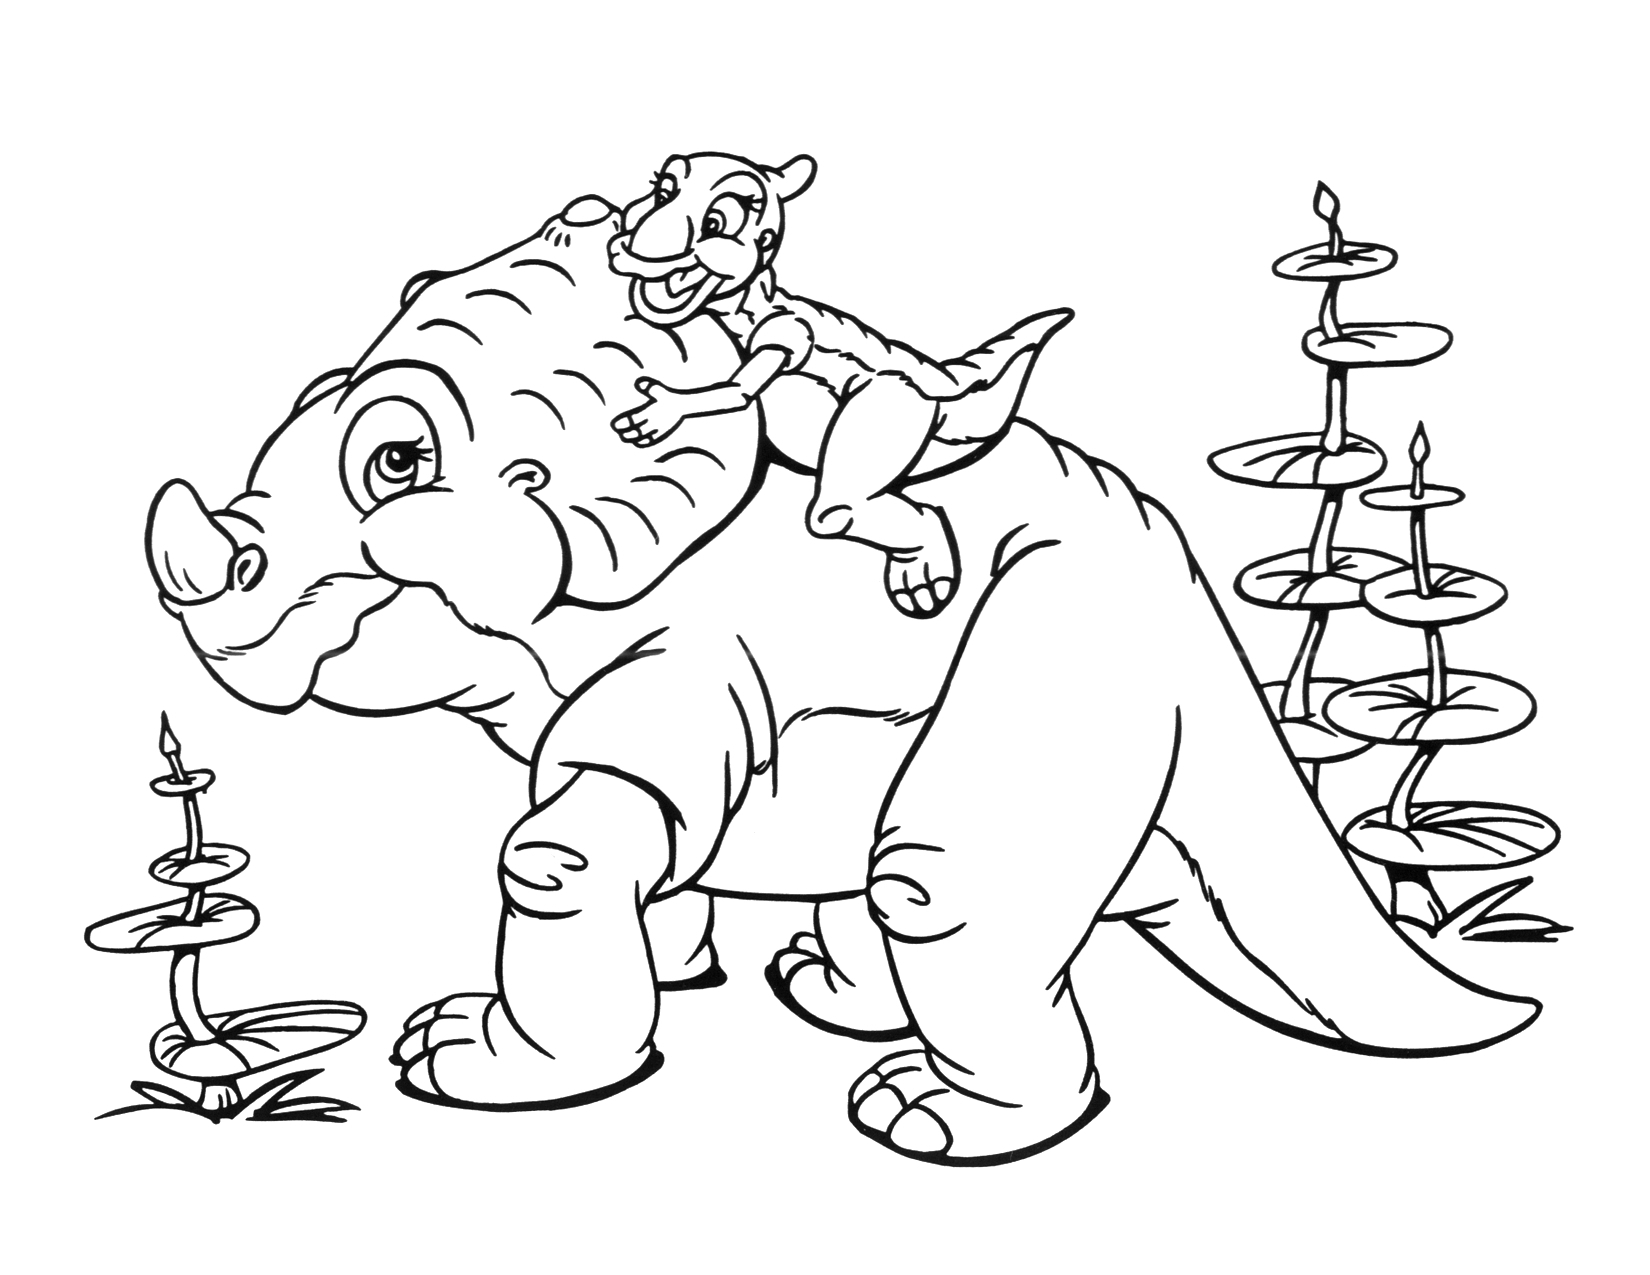 1650x1275 Printable Image Coloring Page Movie Free Coloring Pages Download